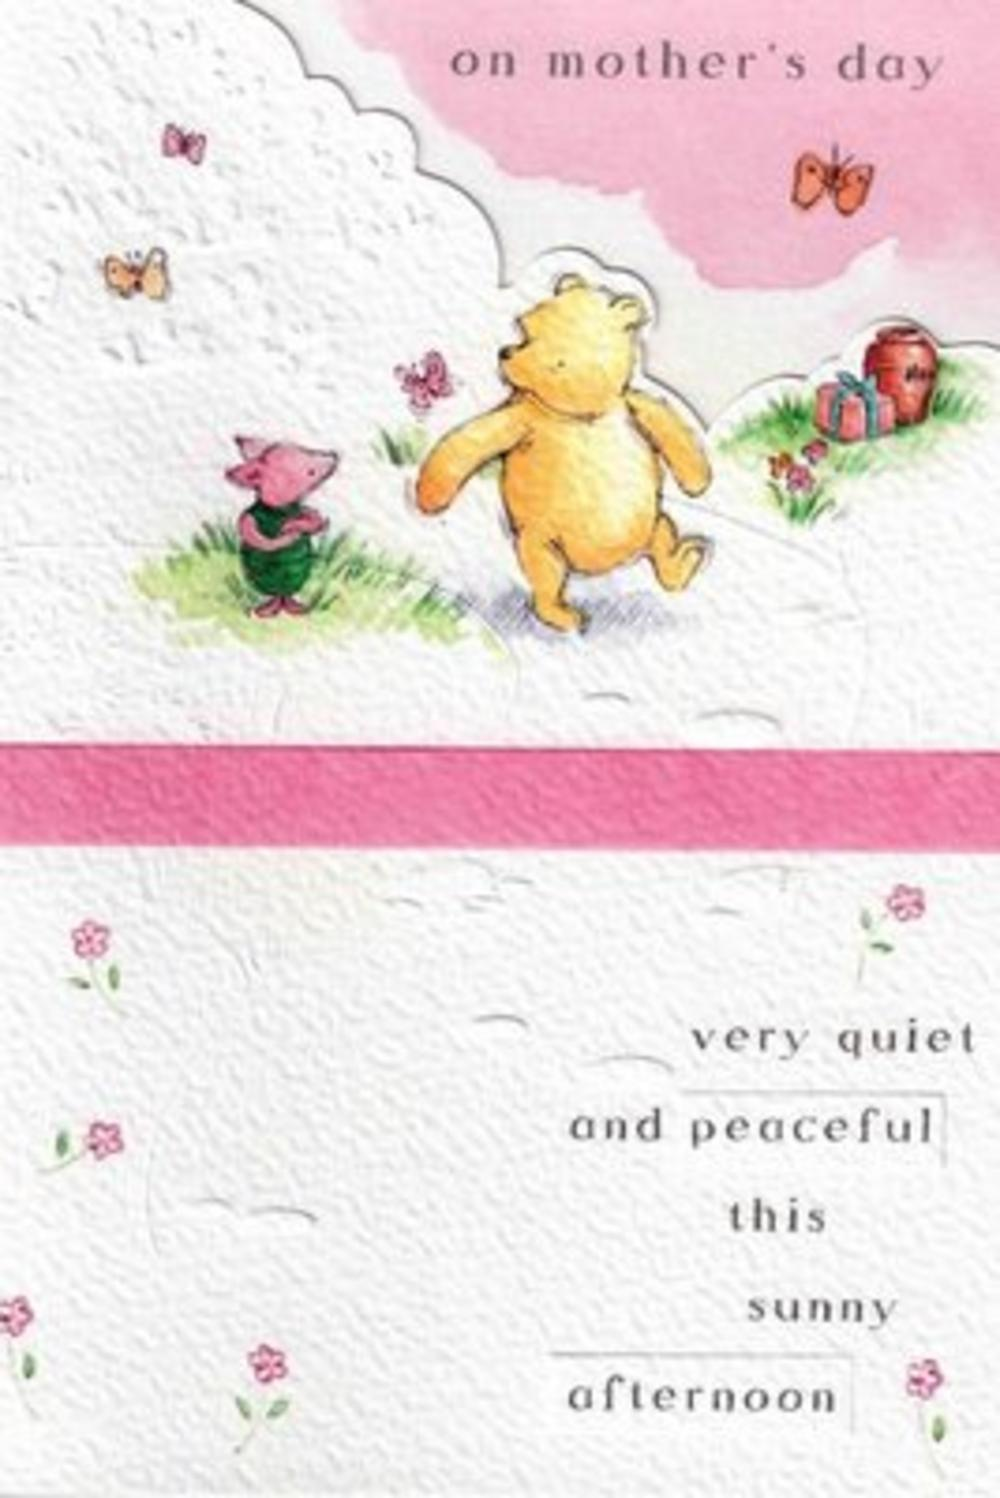 Cute Winnie The Pooh Bear Mother's Day Card